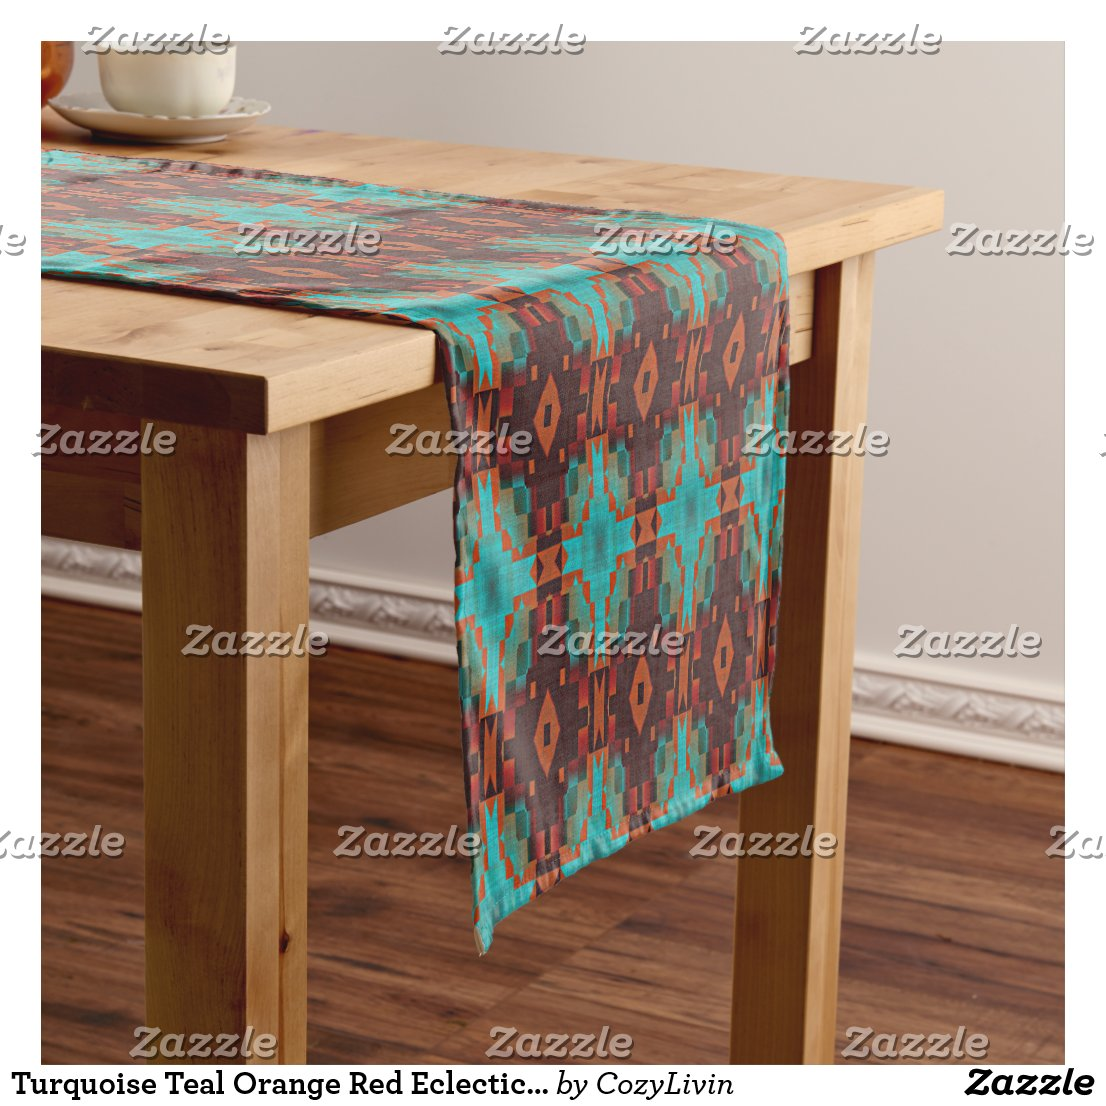 Western Table Runner With Turquoise, Teal, And Orange